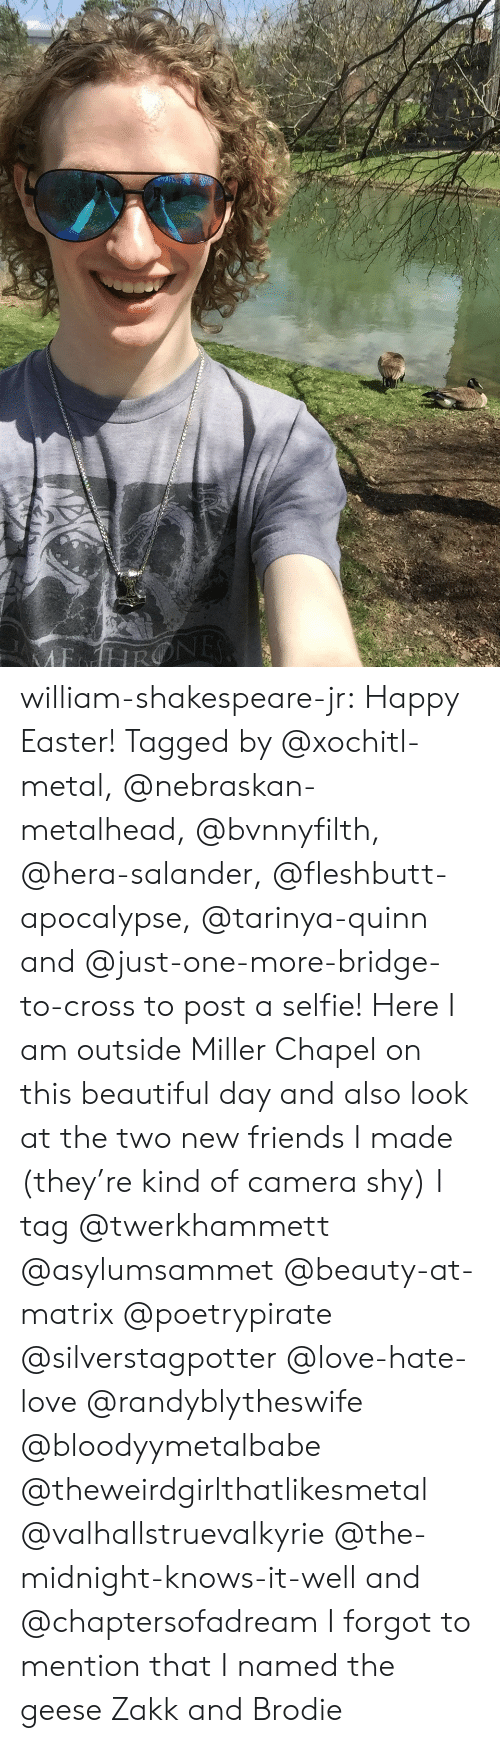 Am Outside: william-shakespeare-jr: Happy Easter! Tagged by @xochitl-metal, @nebraskan-metalhead, @bvnnyfilth, @hera-salander, @fleshbutt-apocalypse, @tarinya-quinn and @just-one-more-bridge-to-cross to post a selfie! Here I am outside Miller Chapel on this beautiful day and also look at the two new friends I made (they're kind of camera shy)   I tag @twerkhammett @asylumsammet @beauty-at-matrix @poetrypirate @silverstagpotter @love-hate-love @randyblytheswife @bloodyymetalbabe @theweirdgirlthatlikesmetal @valhallstruevalkyrie @the-midnight-knows-it-well and @chaptersofadream  I forgot to mention that I named the geese Zakk and Brodie